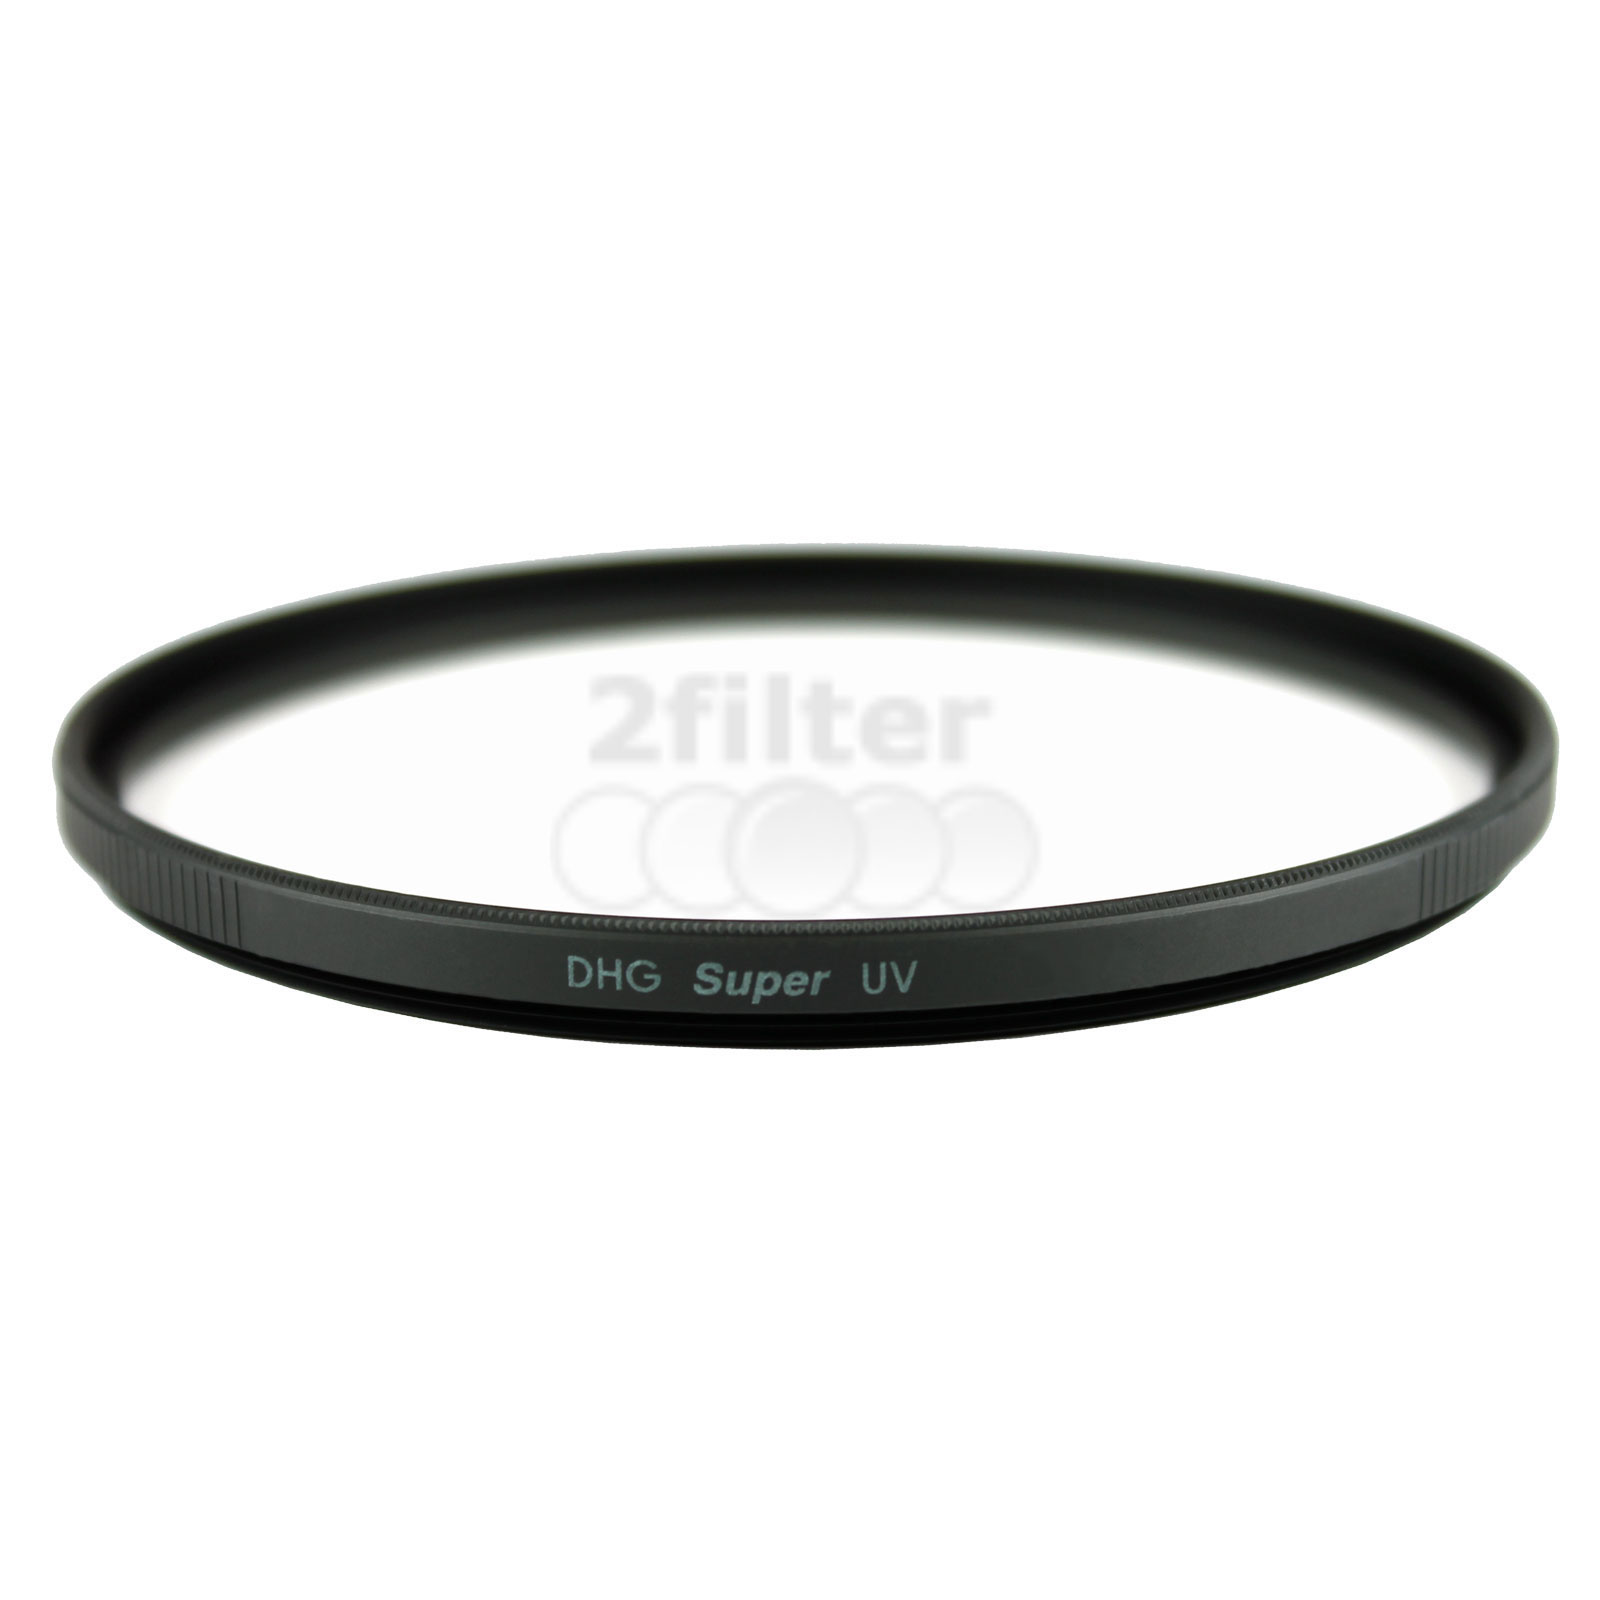 Super-DHG-UV-Filter-Side-View